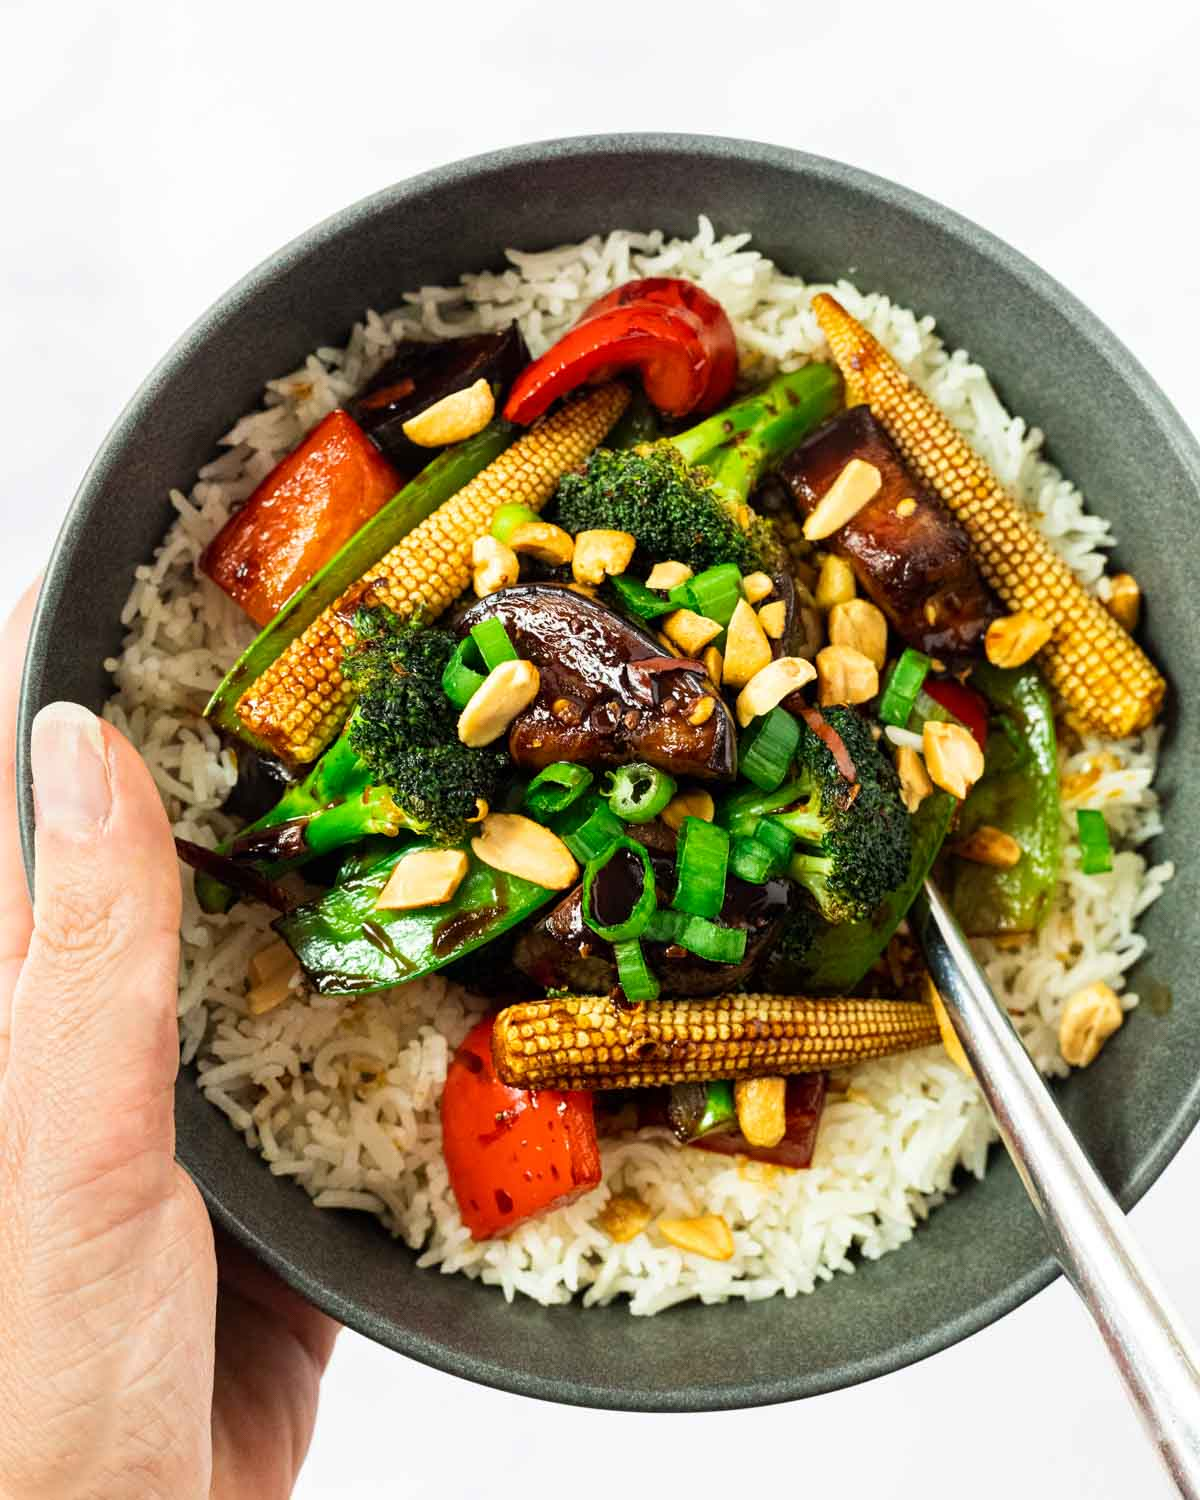 a hand holding a bowl of kung pao vegetables served over rice.